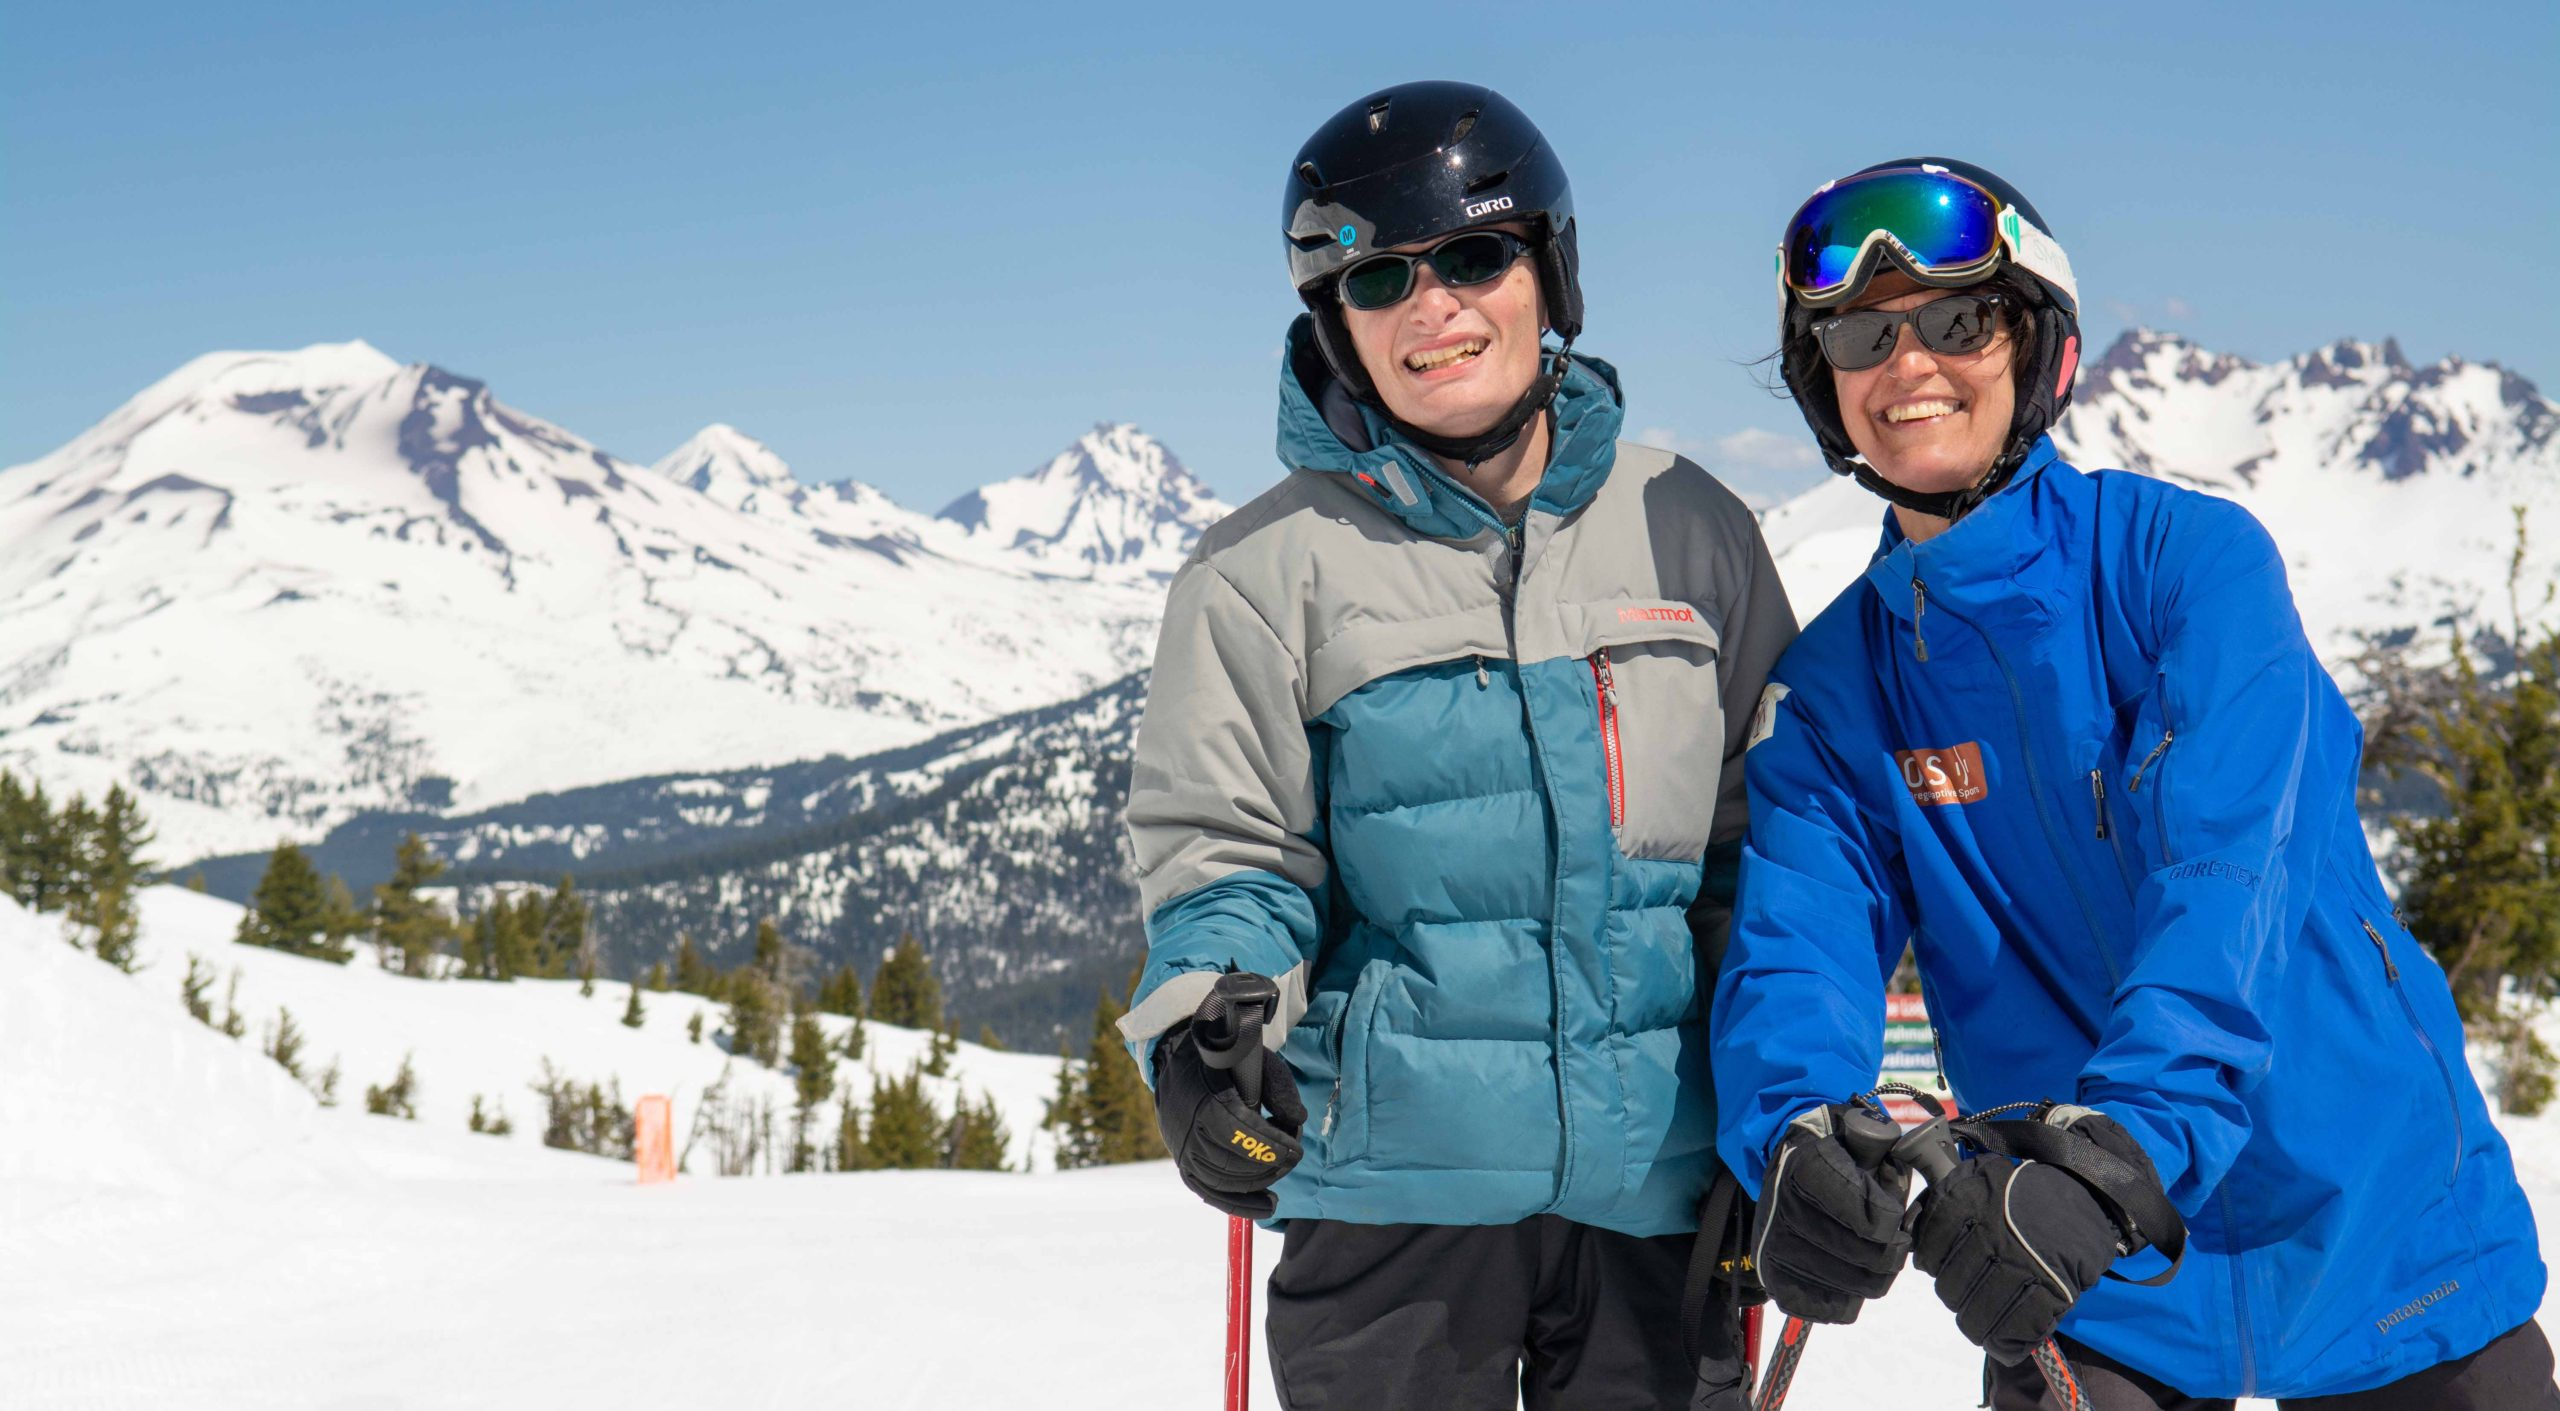 OAS skier and instructor smiling on a sunny day at Mt Bachelor